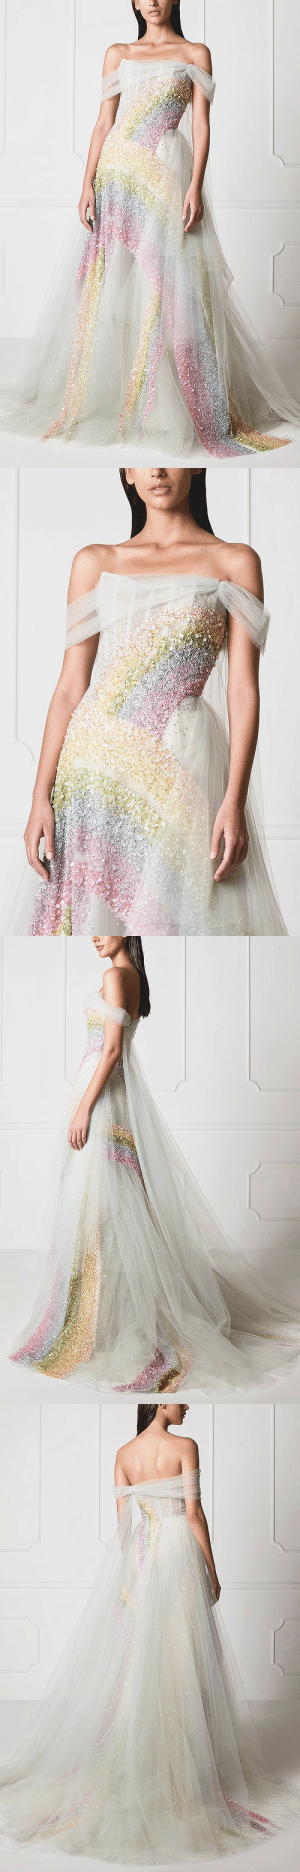 "Fashion, Target, and Tumblr: evermore-fashion:Hamda Al Fahim ""Iris"" Spring 2019 Haute Couture Collection"